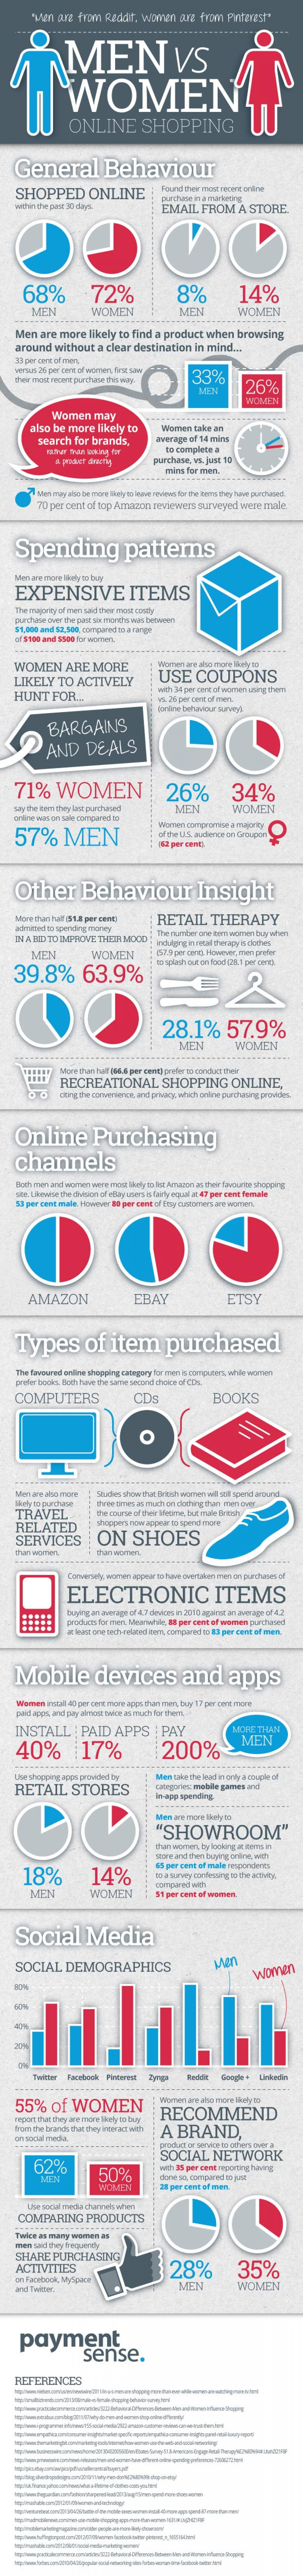 """Men Are From Reddit, Women Are From Pinterest"" Men VS Women Online Shopping Infographic"